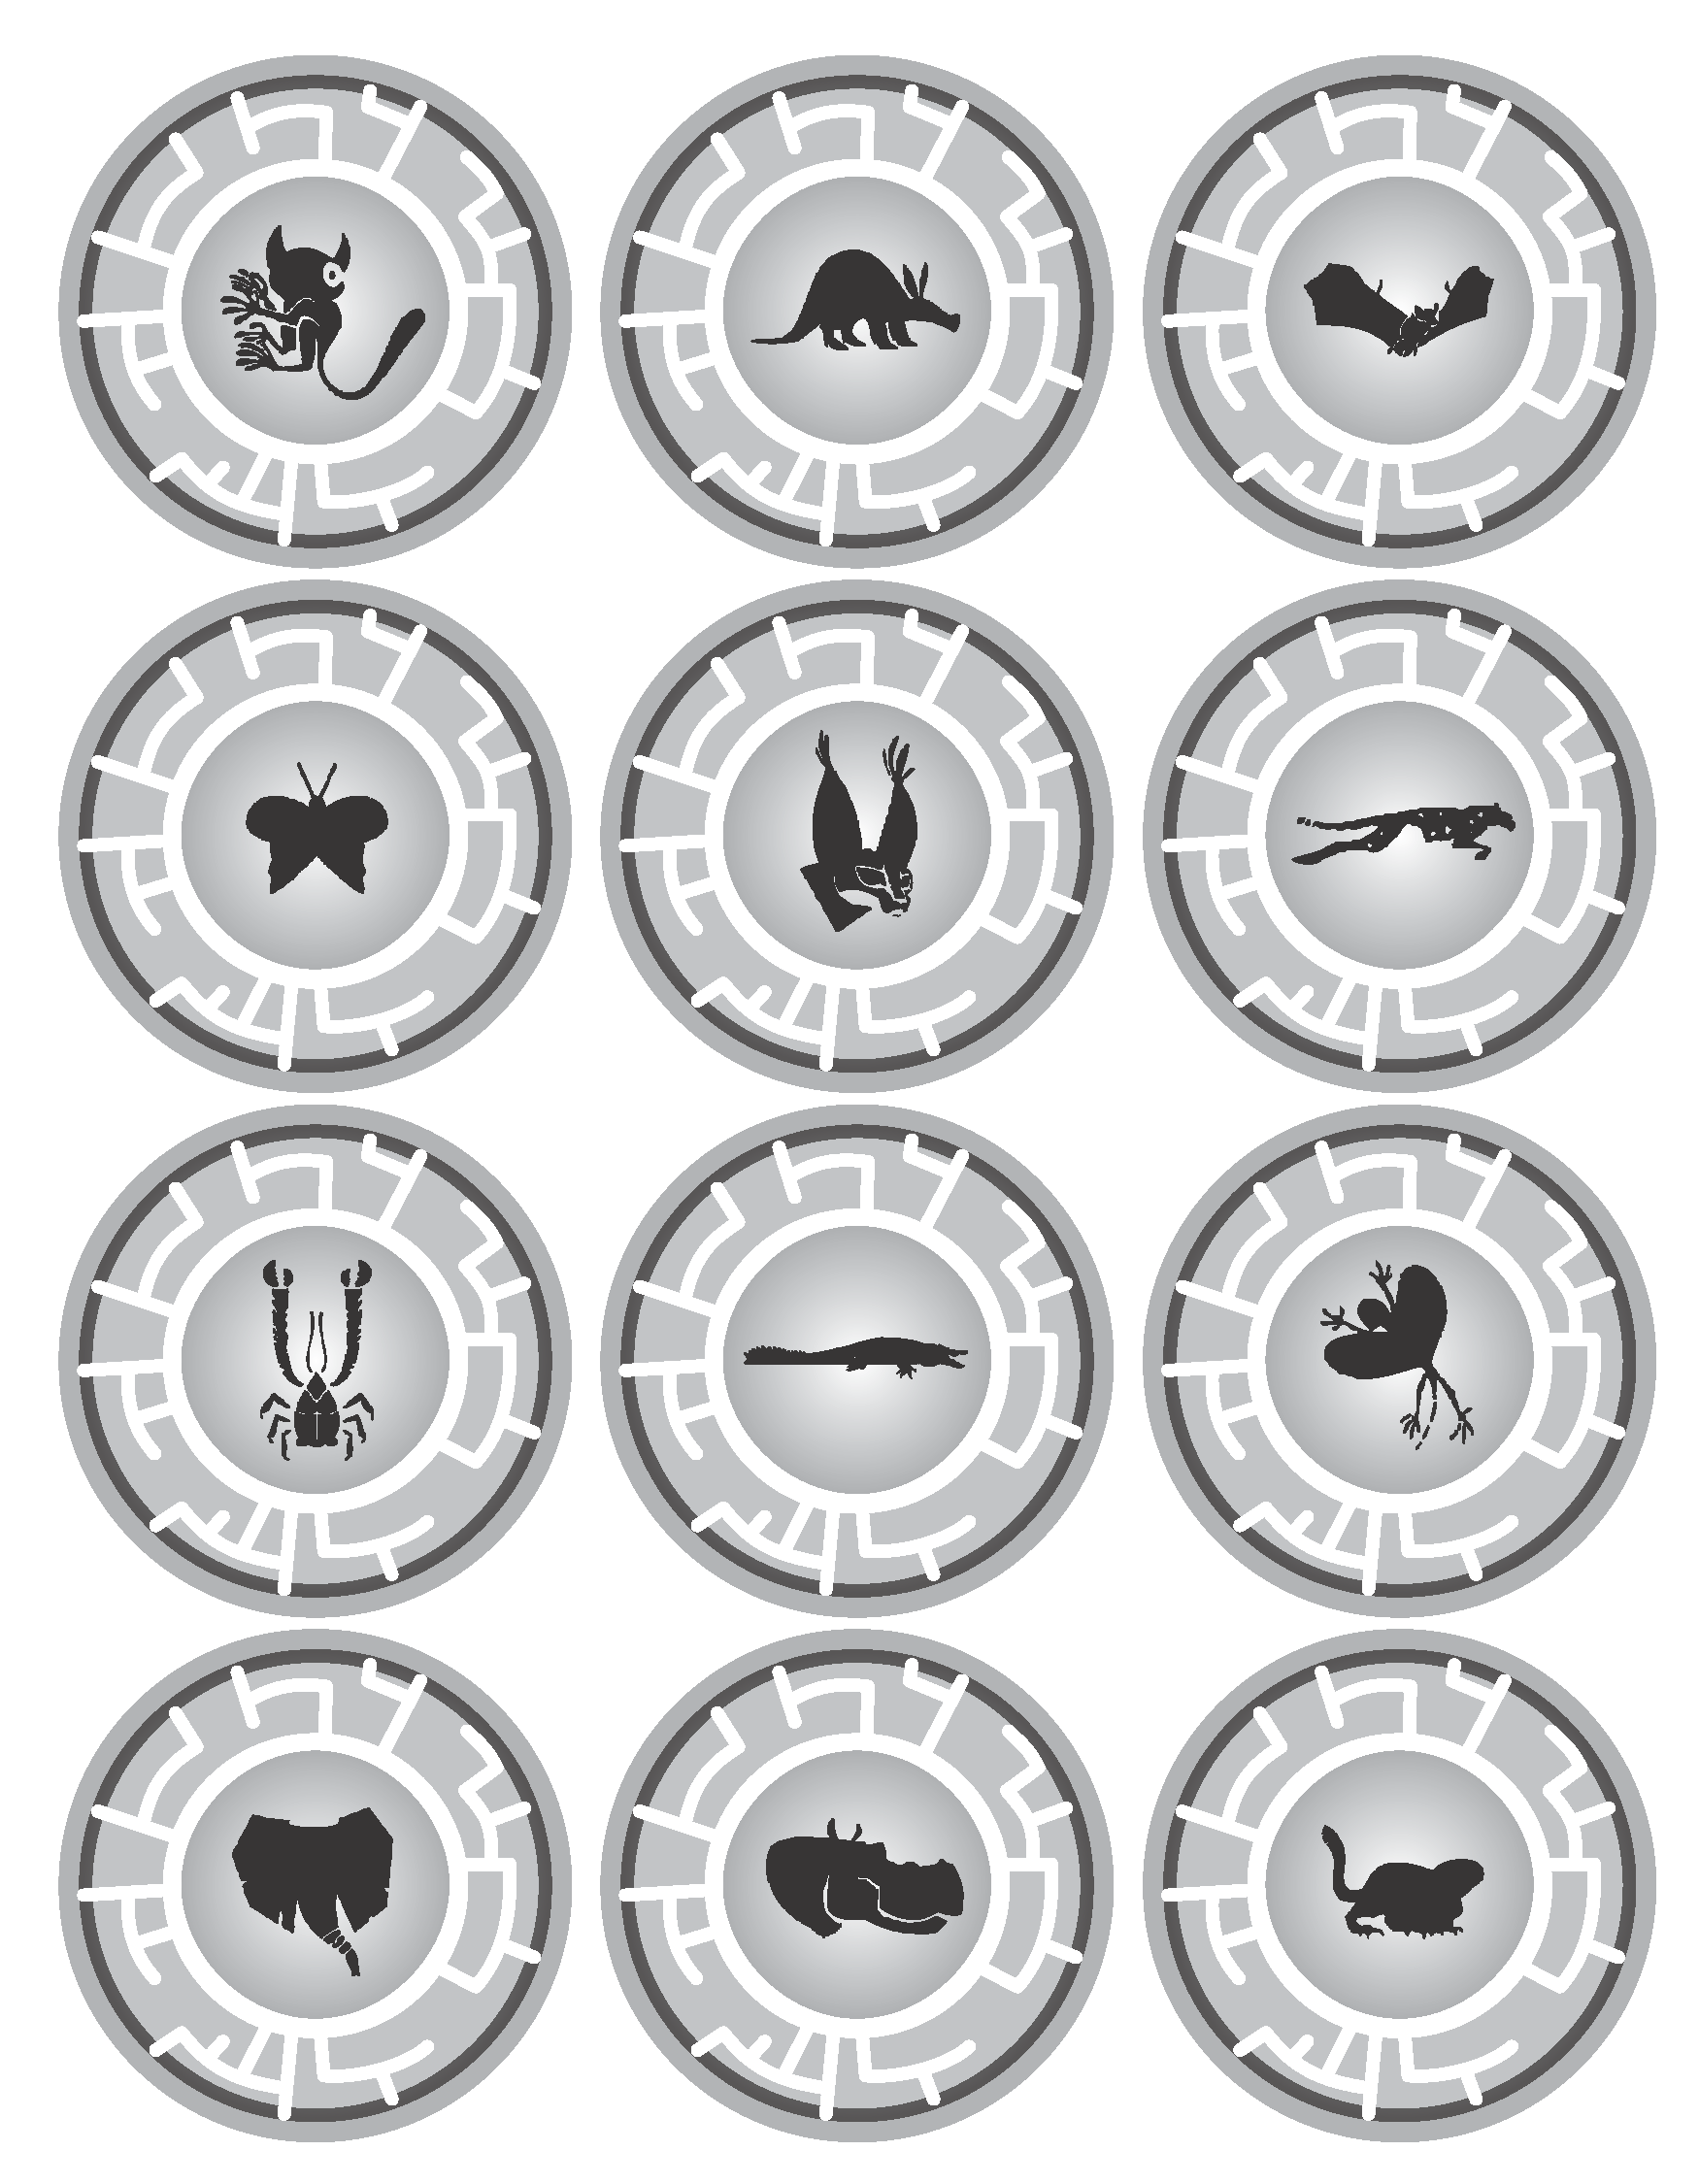 Here S A Pdf Of Some Of The Creature Power Discs I Ve Made For My Kids Who Love Wild Kratts And Dr Wild Kratts Wild Kratts Birthday Wild Kratts Birthday Party